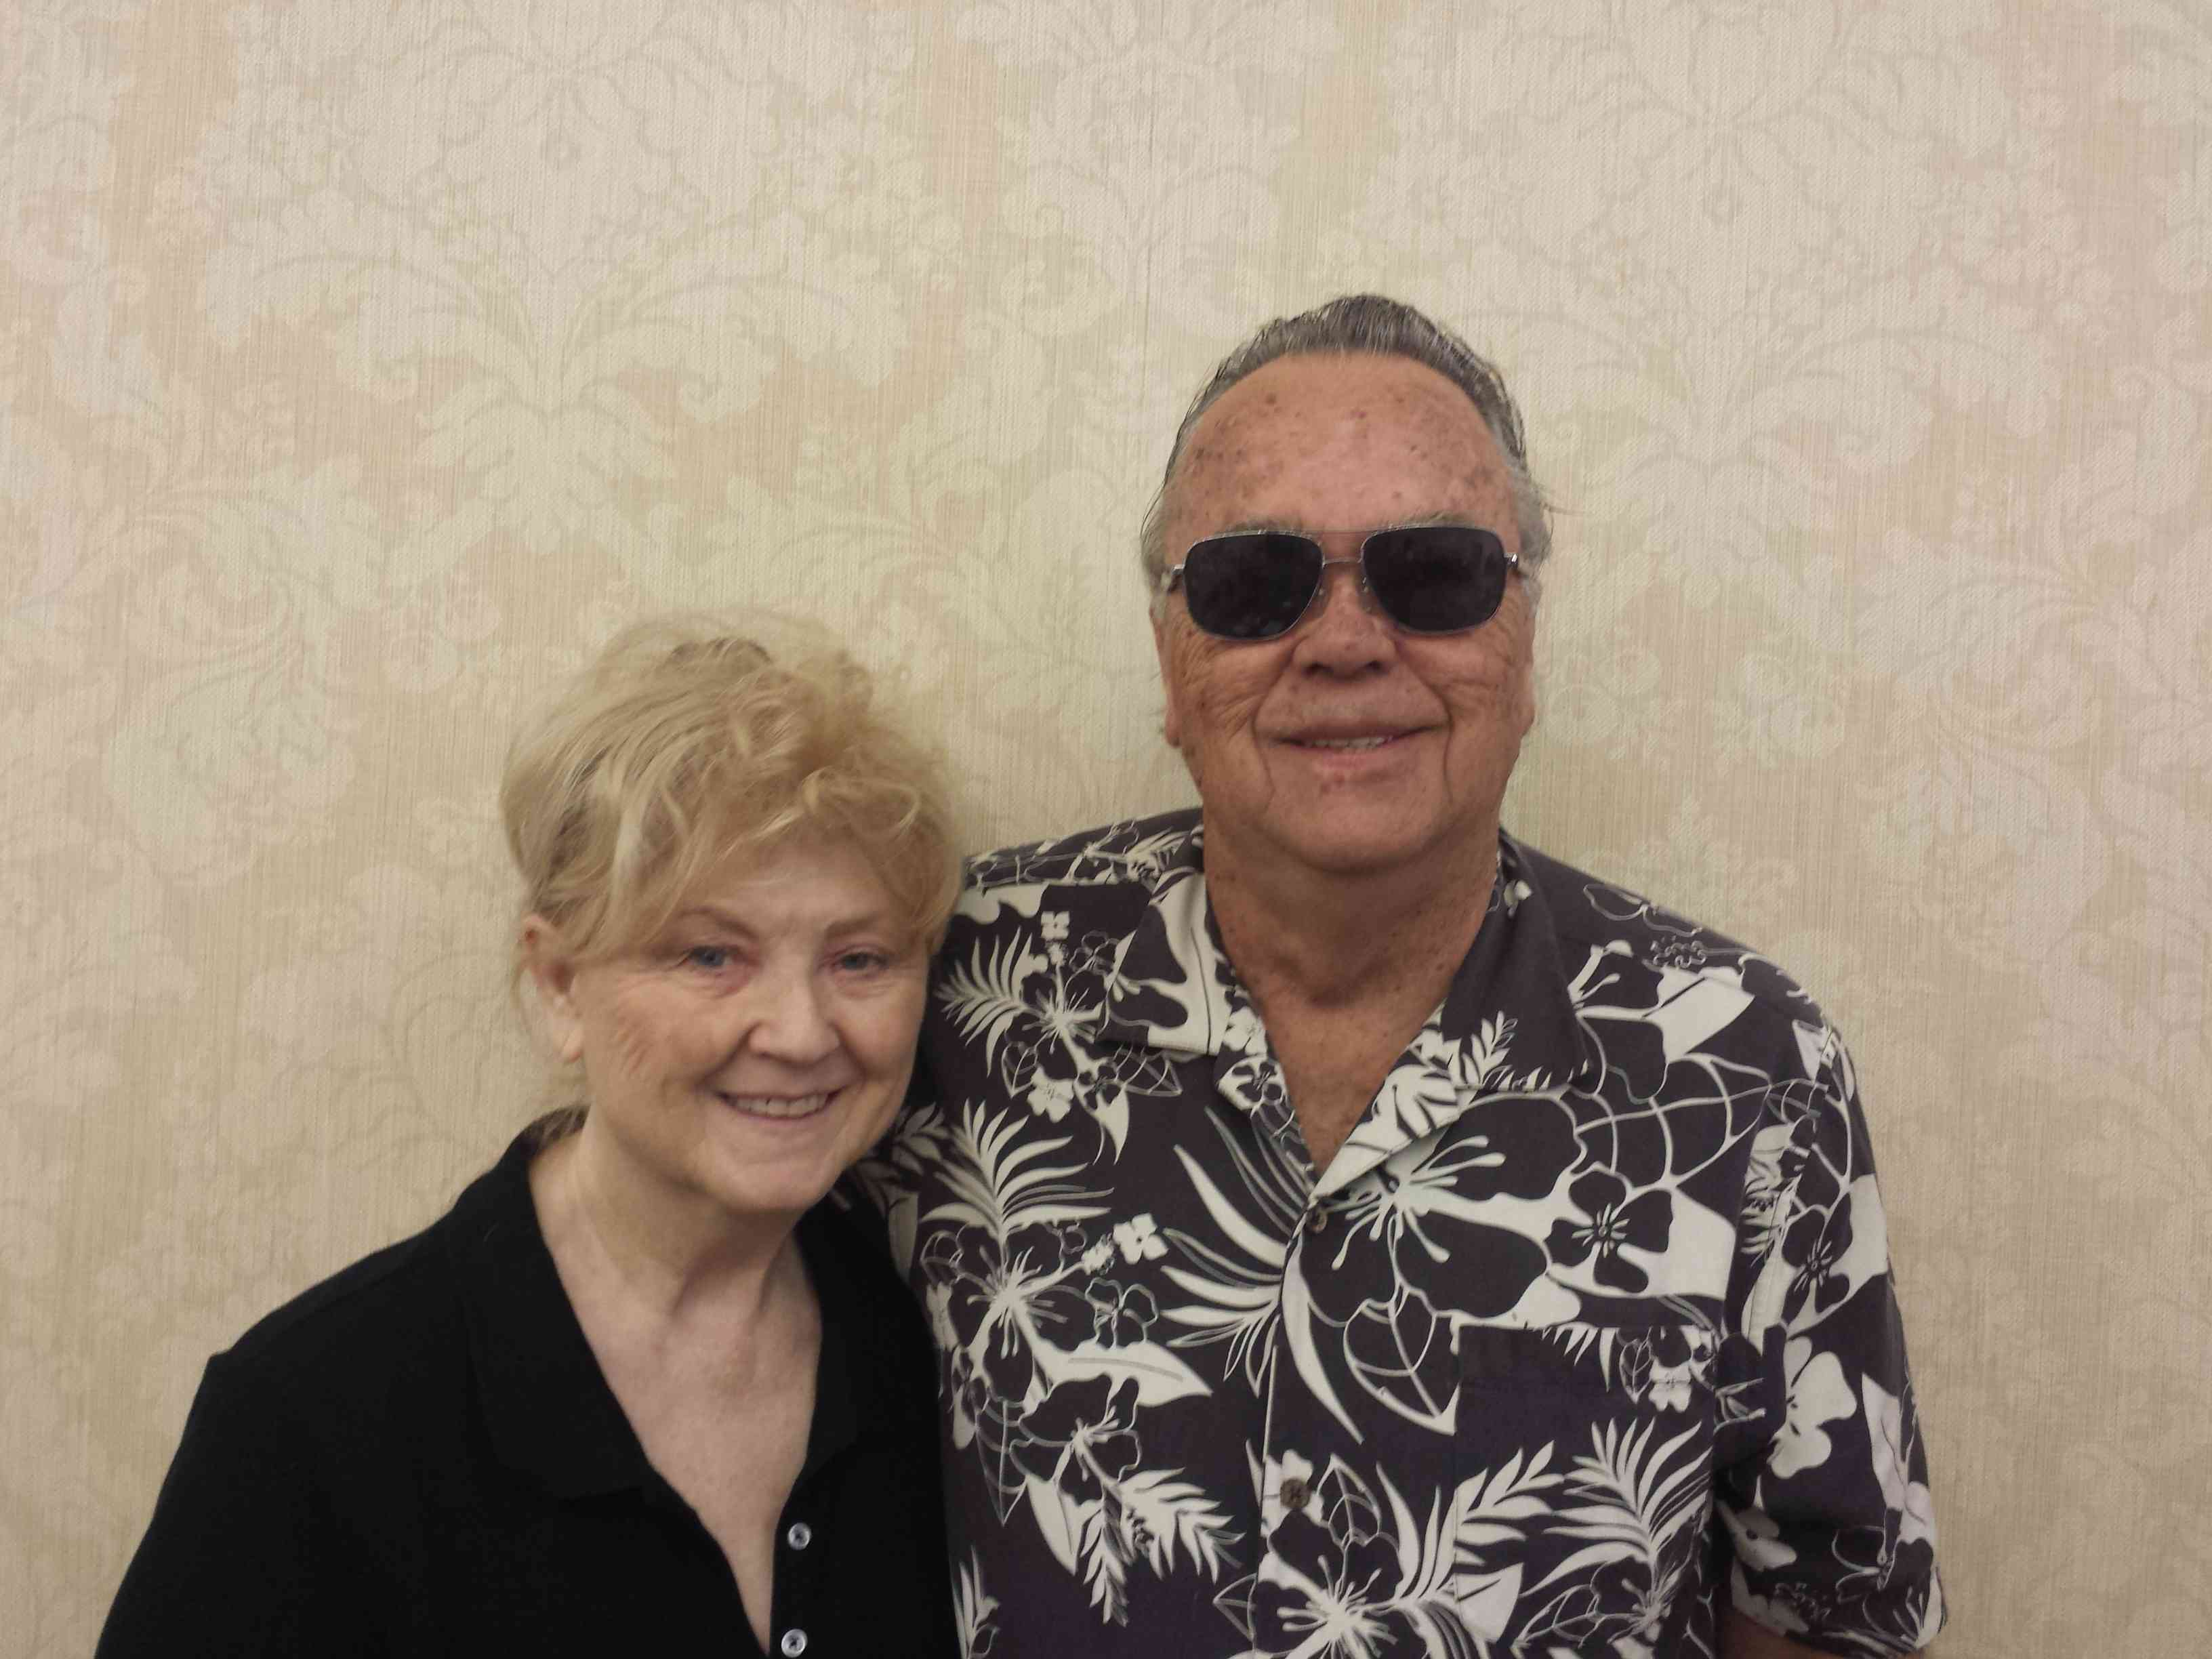 Sat open pairs (B) Glenda and John Chaison (N. Las Vegas, NV)